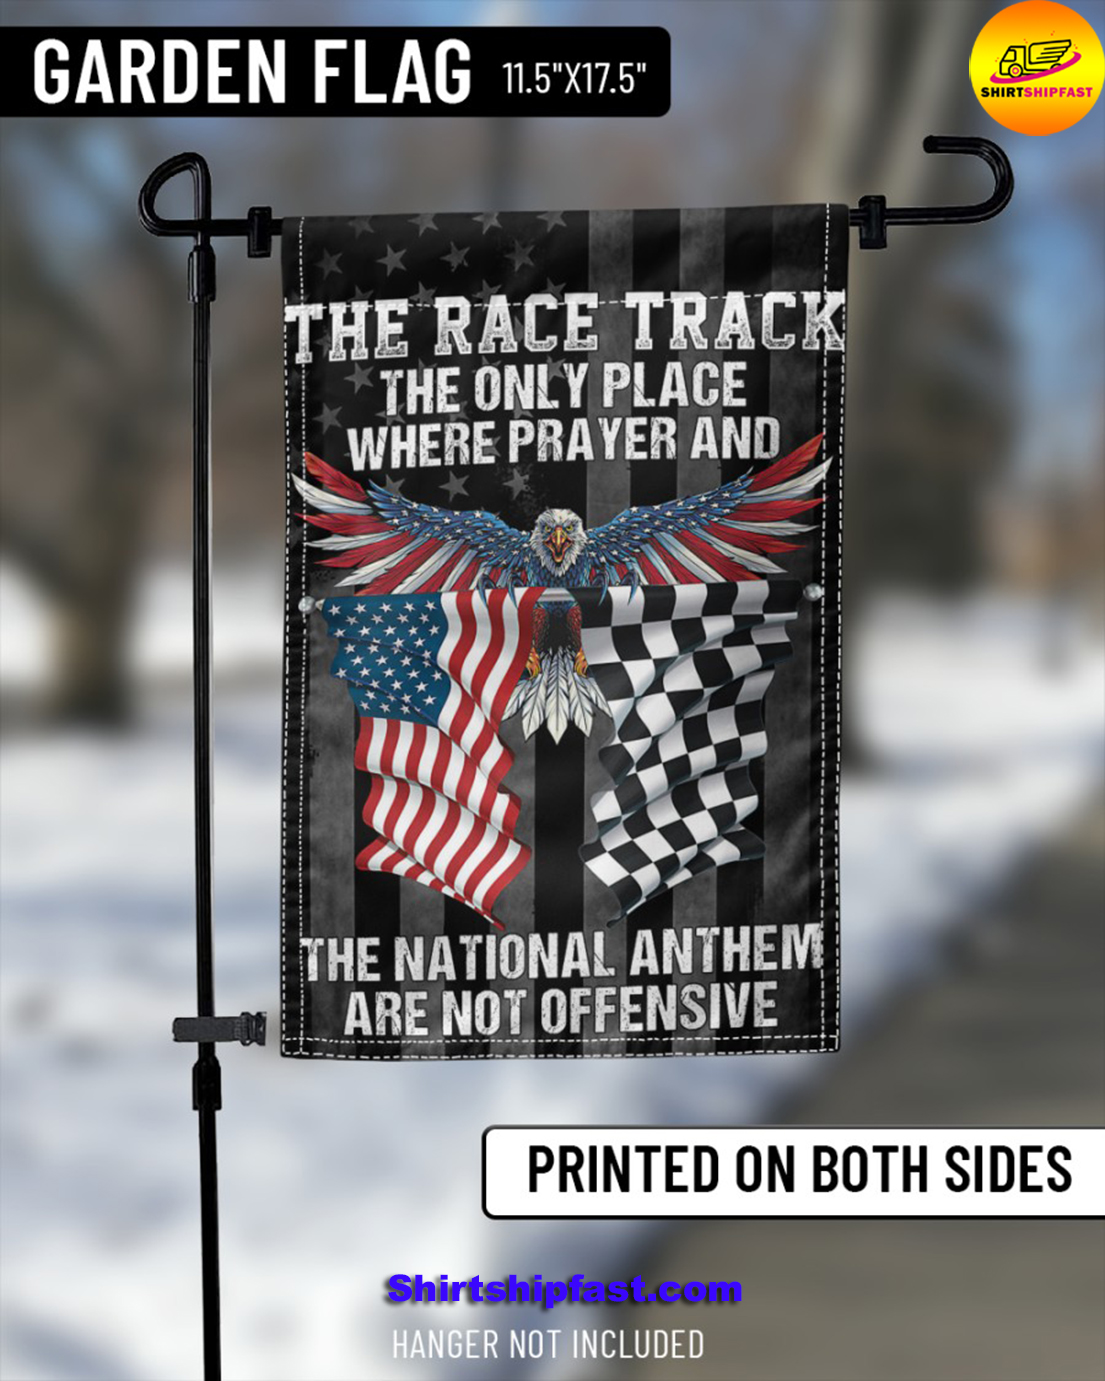 Eagle The race track the only place where prayer and the national anthem are not offensive flag - Picture 1